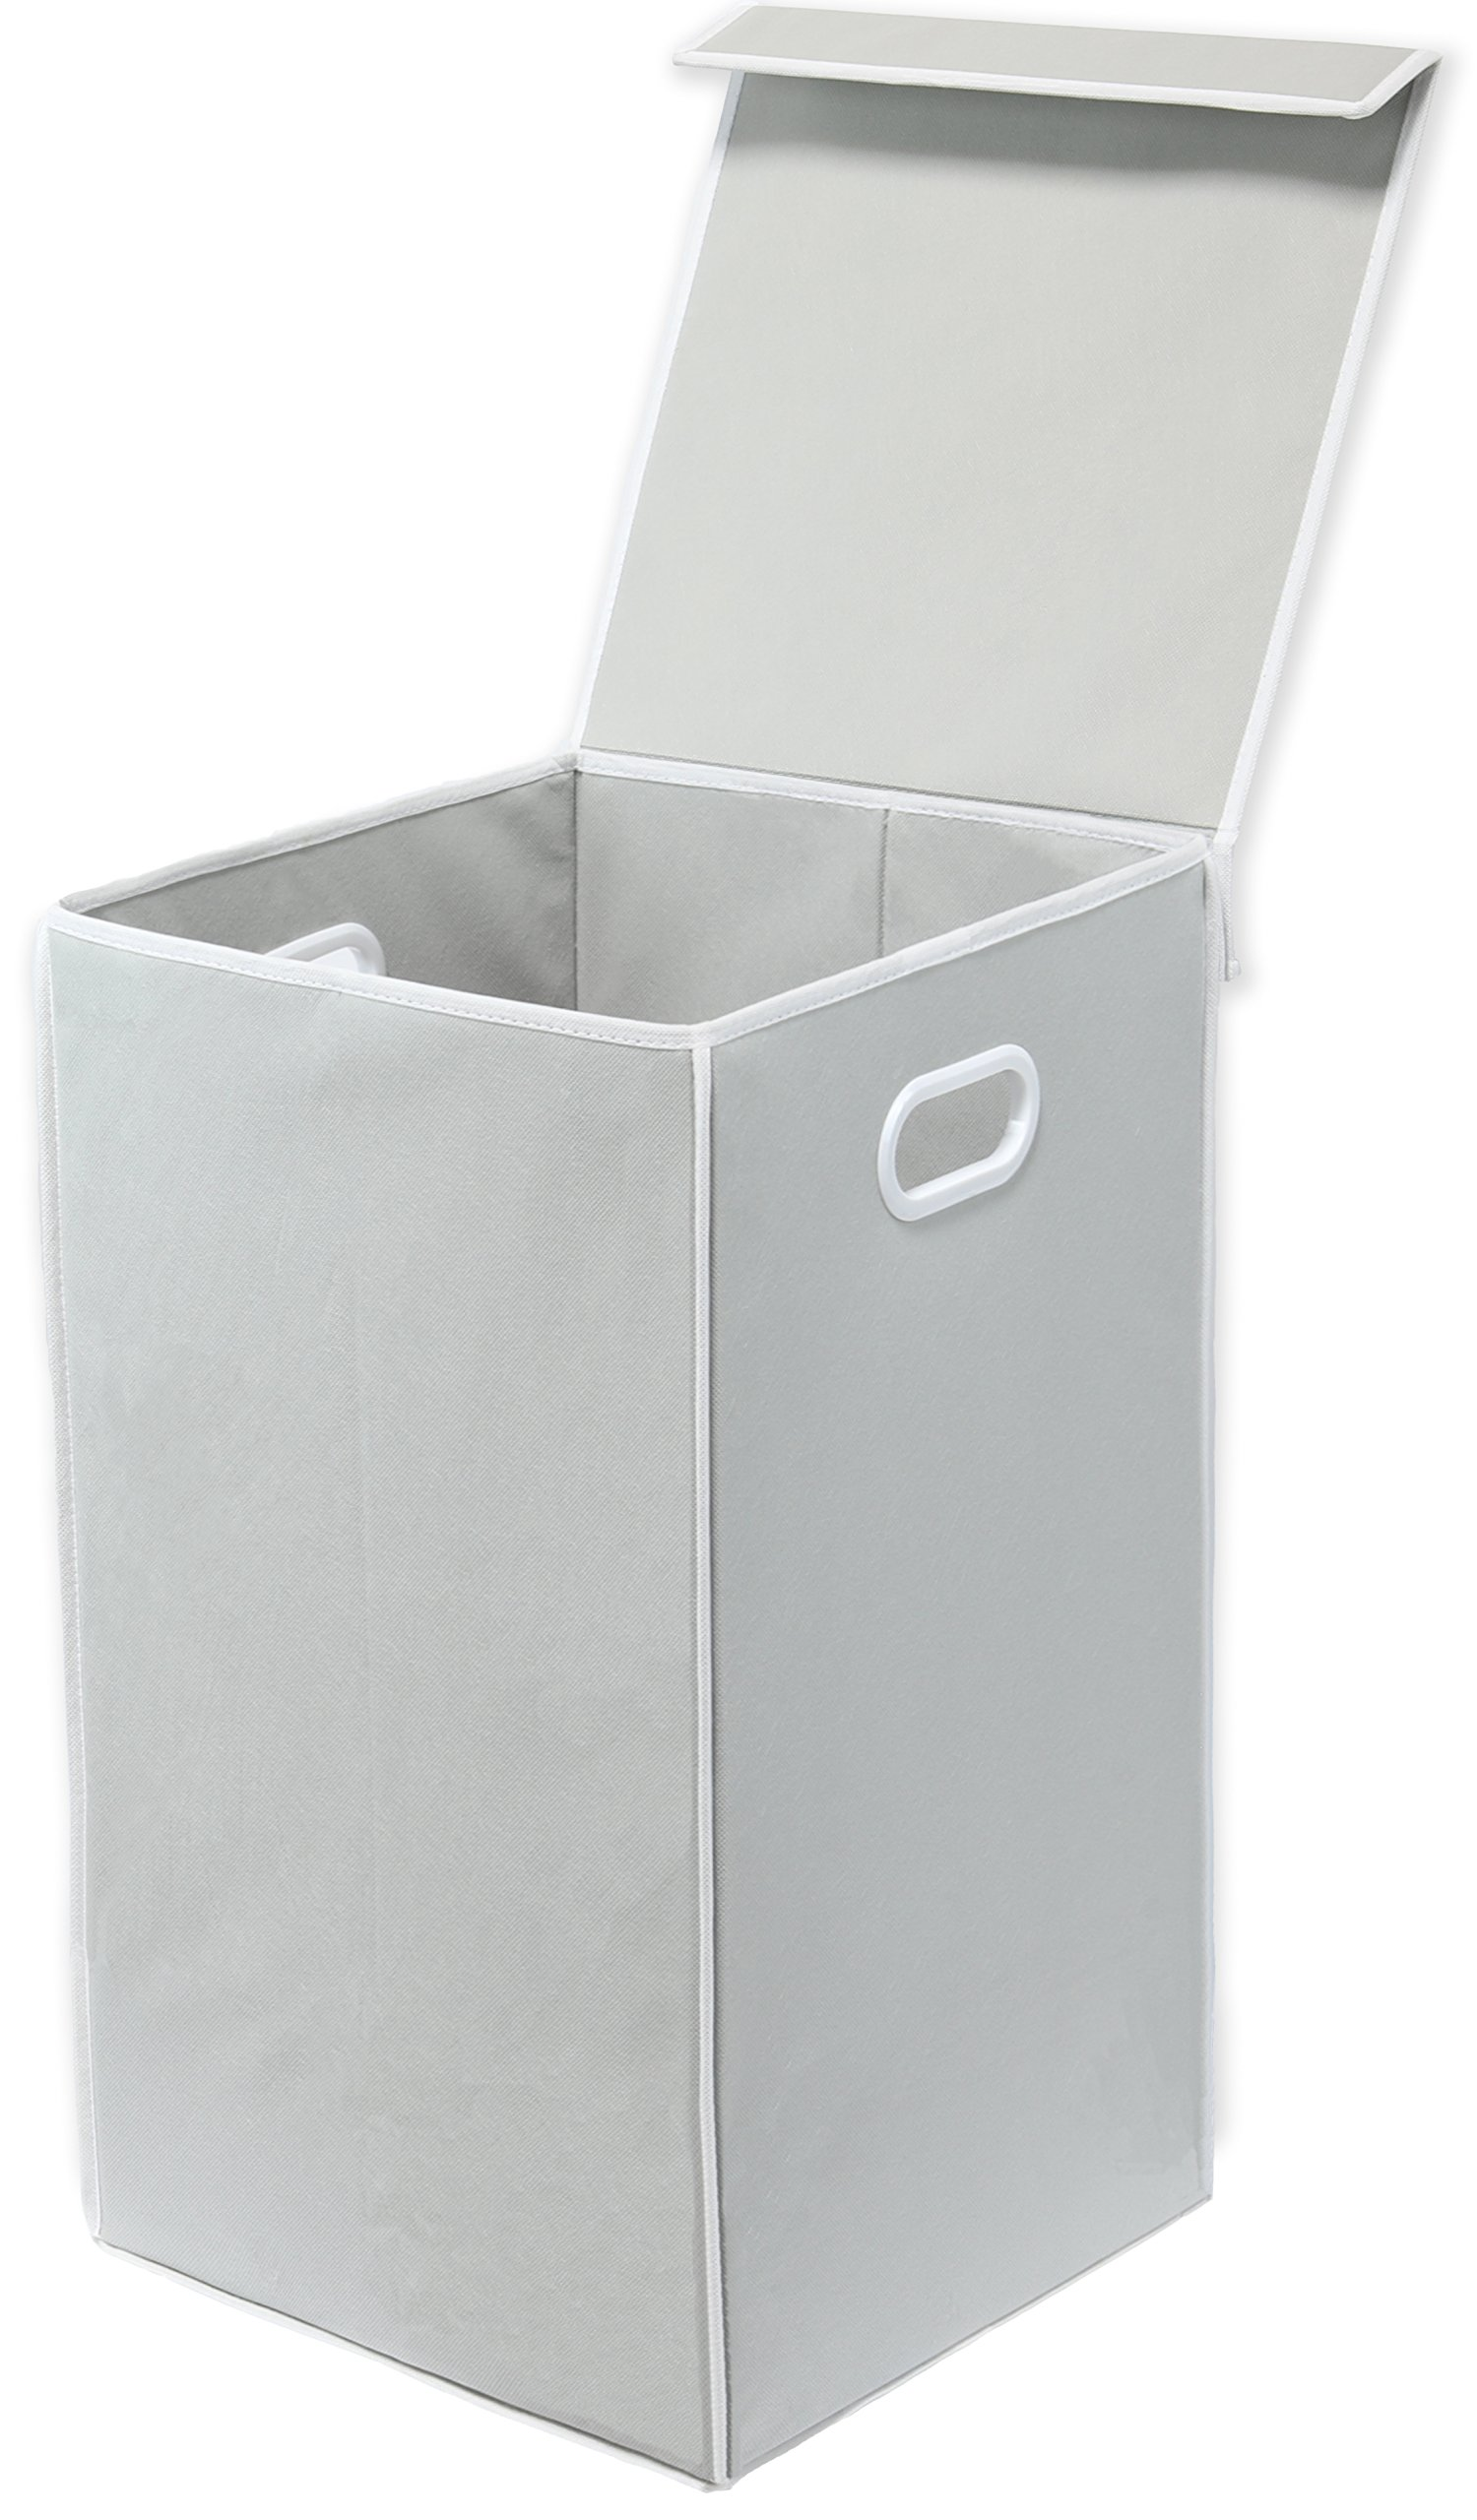 Simple Houseware Foldable Laundry Hamper Basket with Lid, Grey by Simple Houseware